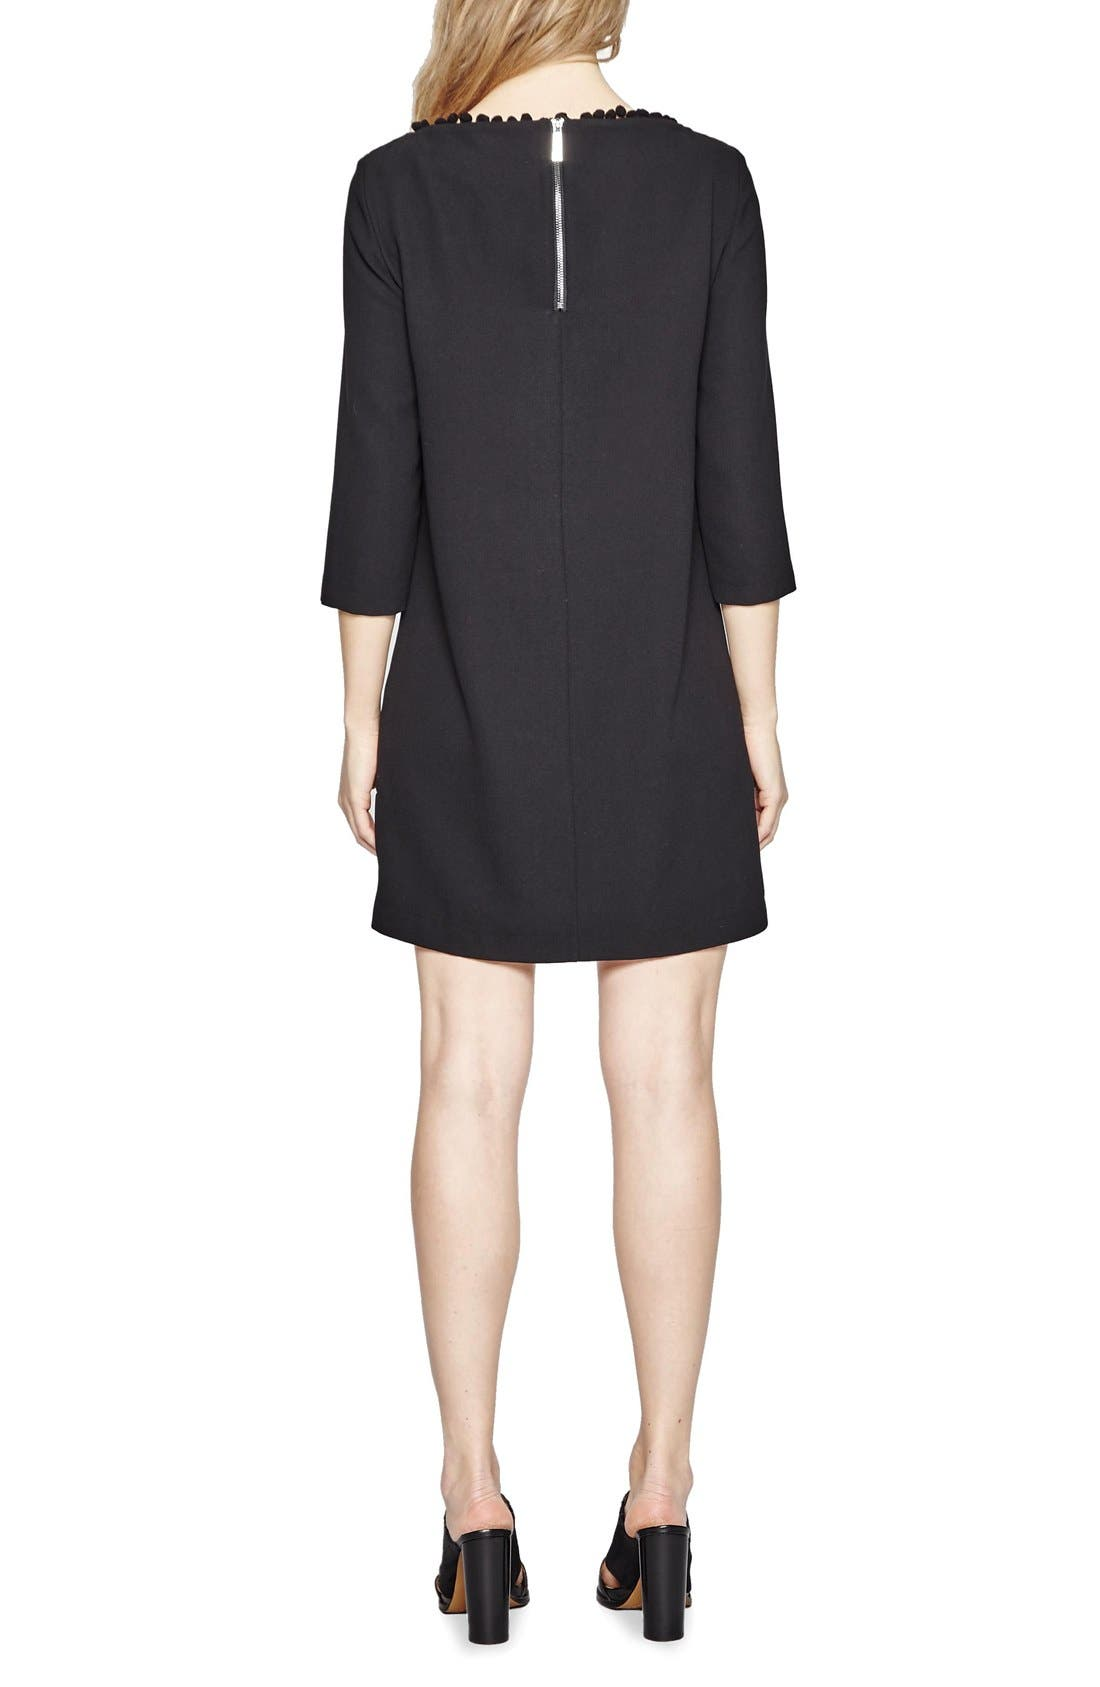 FRENCH CONNECTION,                             Arrow Dress,                             Alternate thumbnail 2, color,                             001